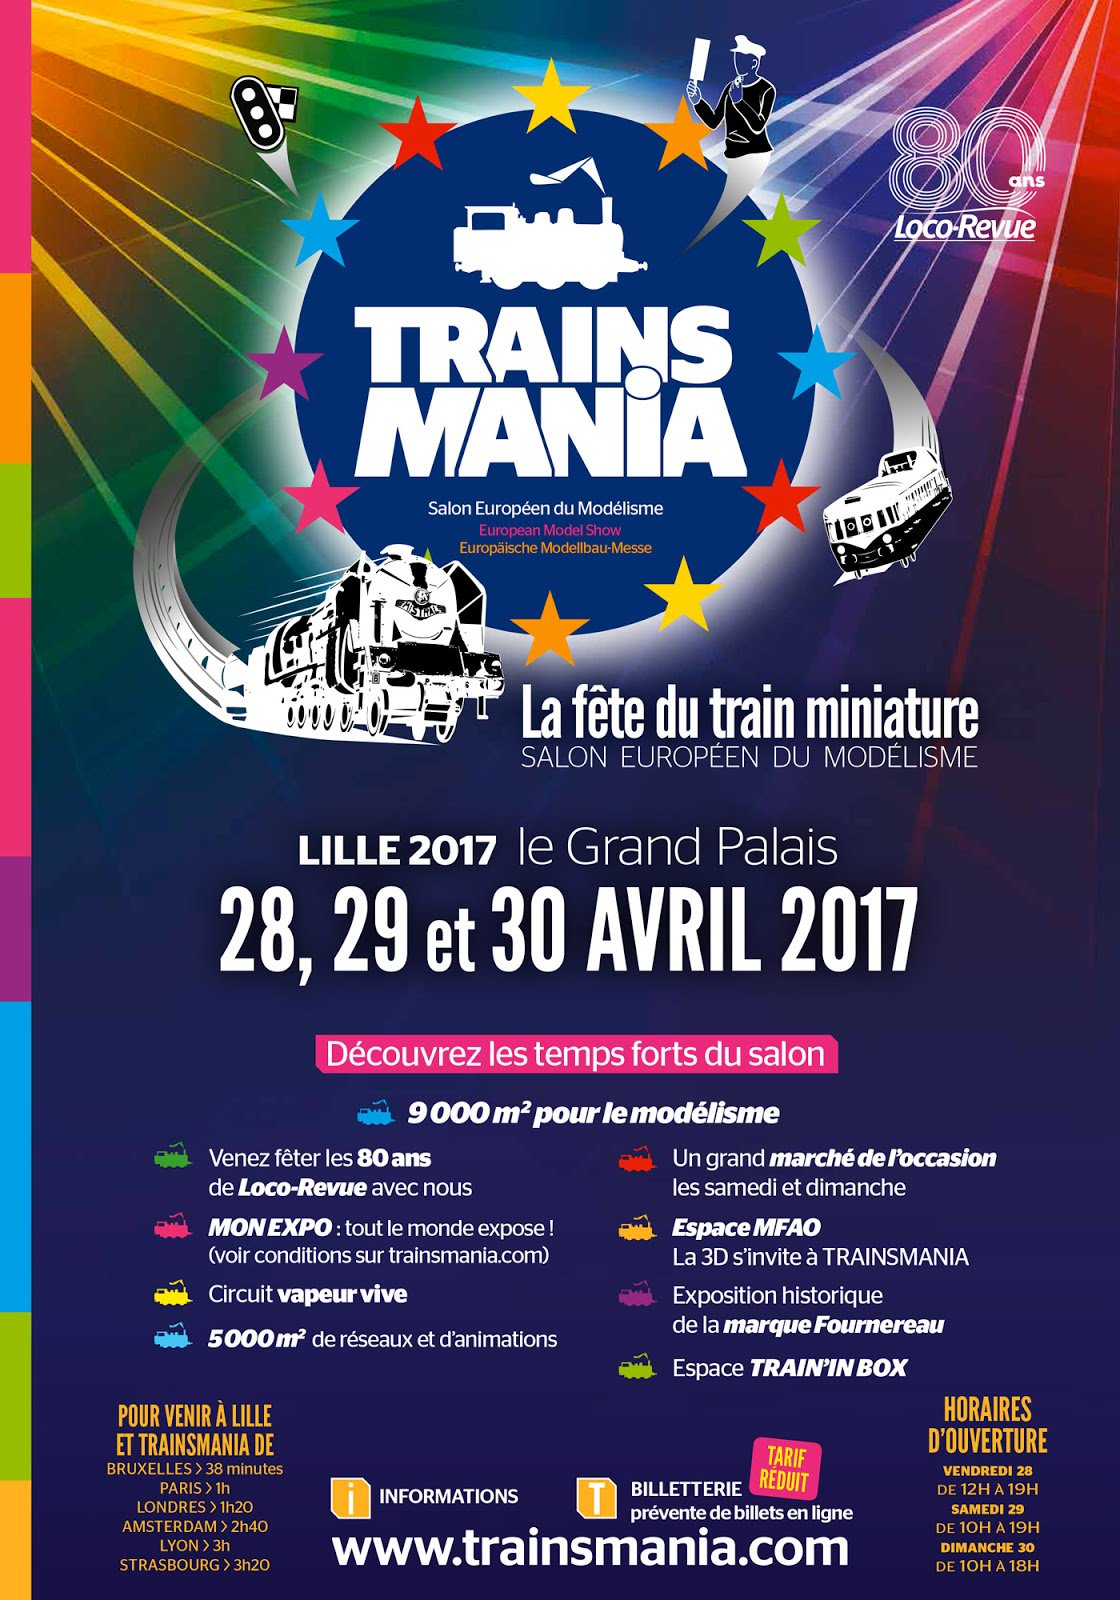 Lille Grand Palais on Twitter: